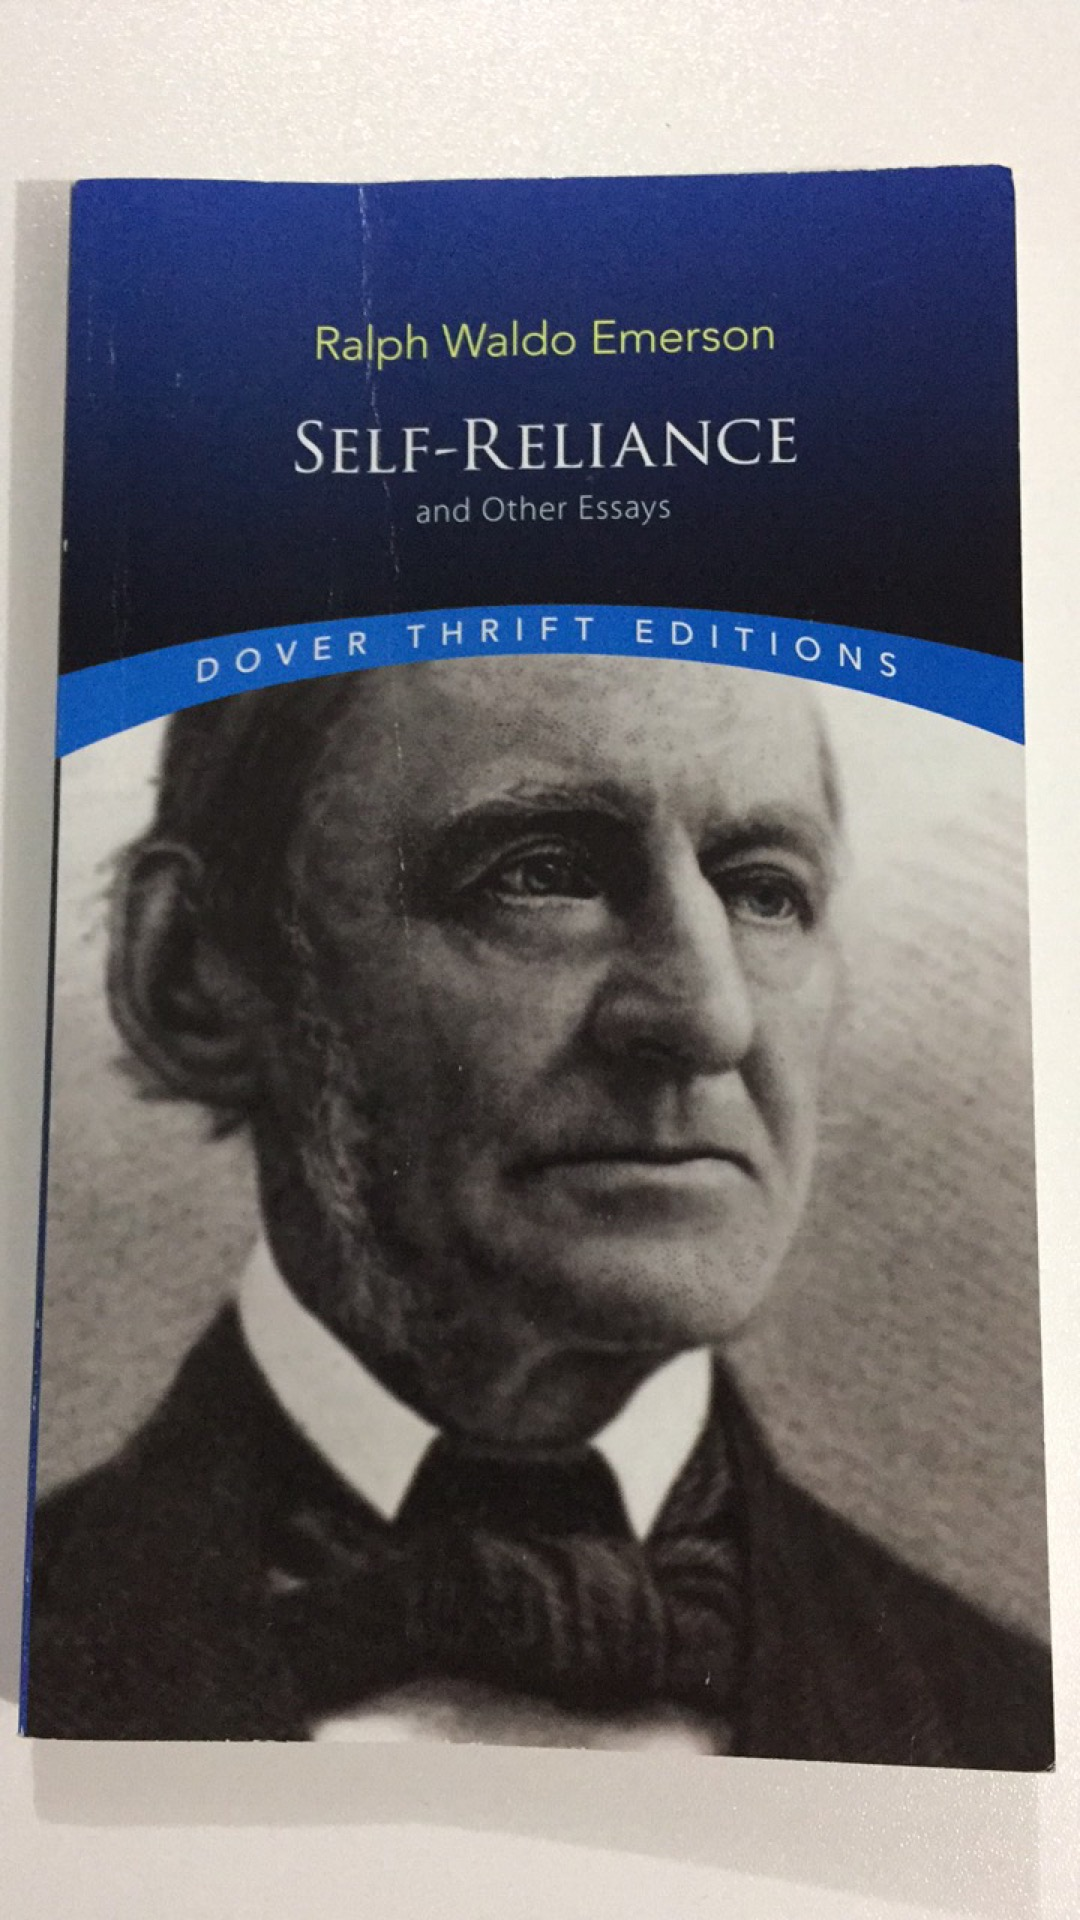 essay about ralph waldo emerson self reliance Self-reliance summary self-reliance, first published in essays (first series) in 1841, is widely considered to be the definitive statement of ralph waldo emerson's philosophy of individualism and the finest example of his prose.